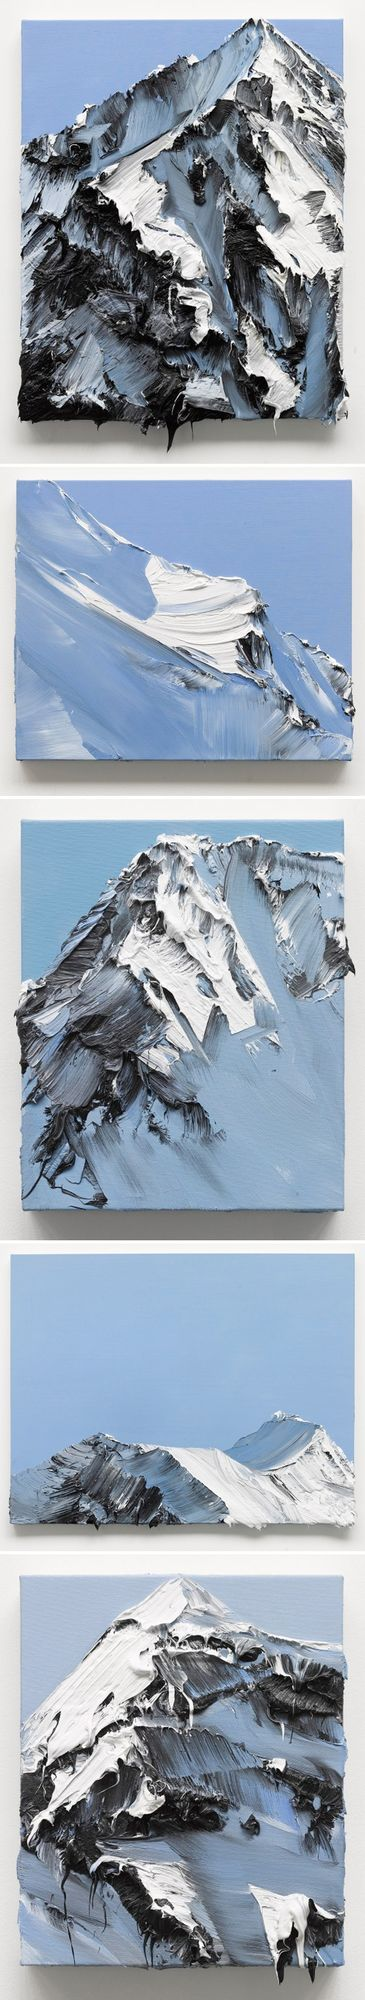 I really want to touch these oil paintings. But I won't. This is the stunning work of Swiss artist Conrad Jon Godly. Perhaps it's the Canadian in me, but majestic snowy mountains will always have a sp